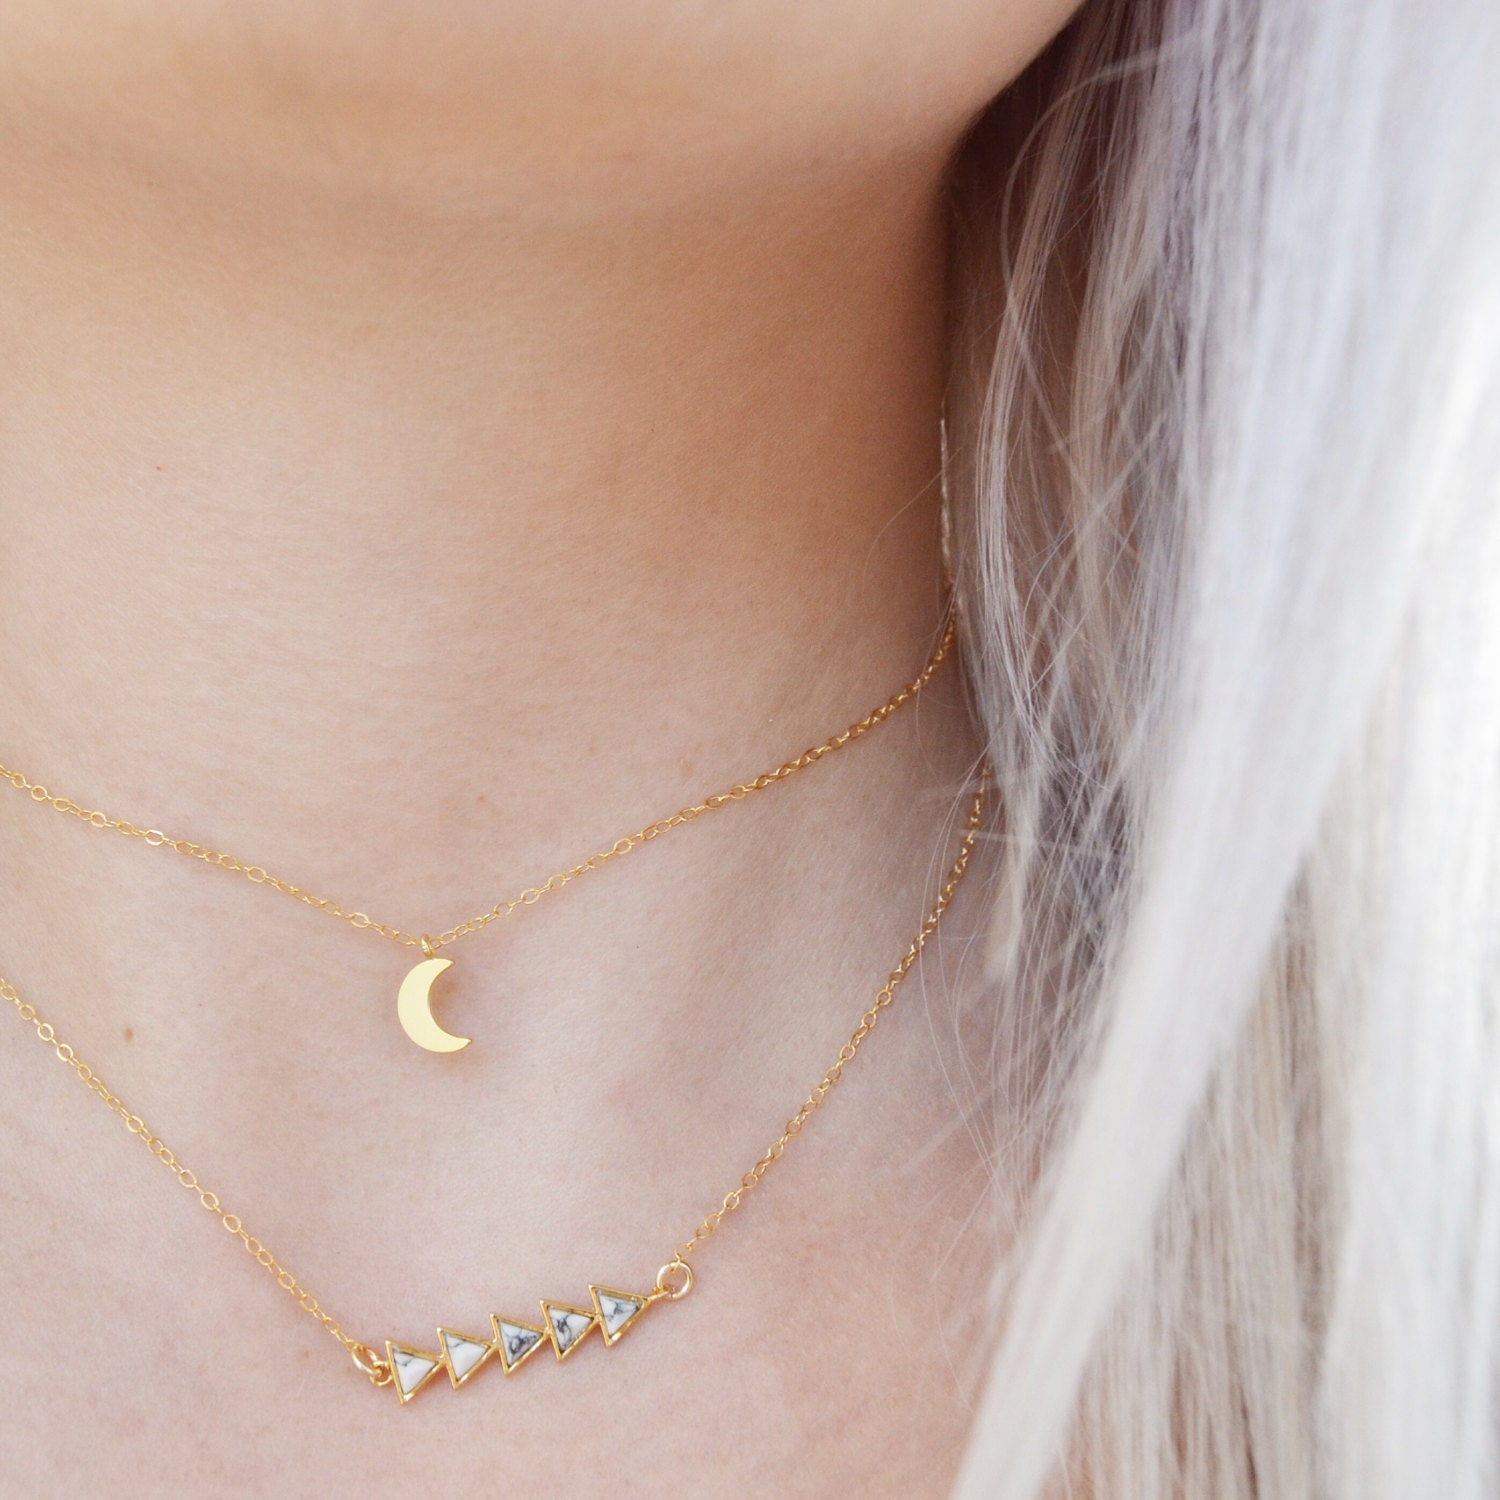 Crescent Moon + Marble Arrows CHOKER SET | 14k gold fill | Layered Necklace |